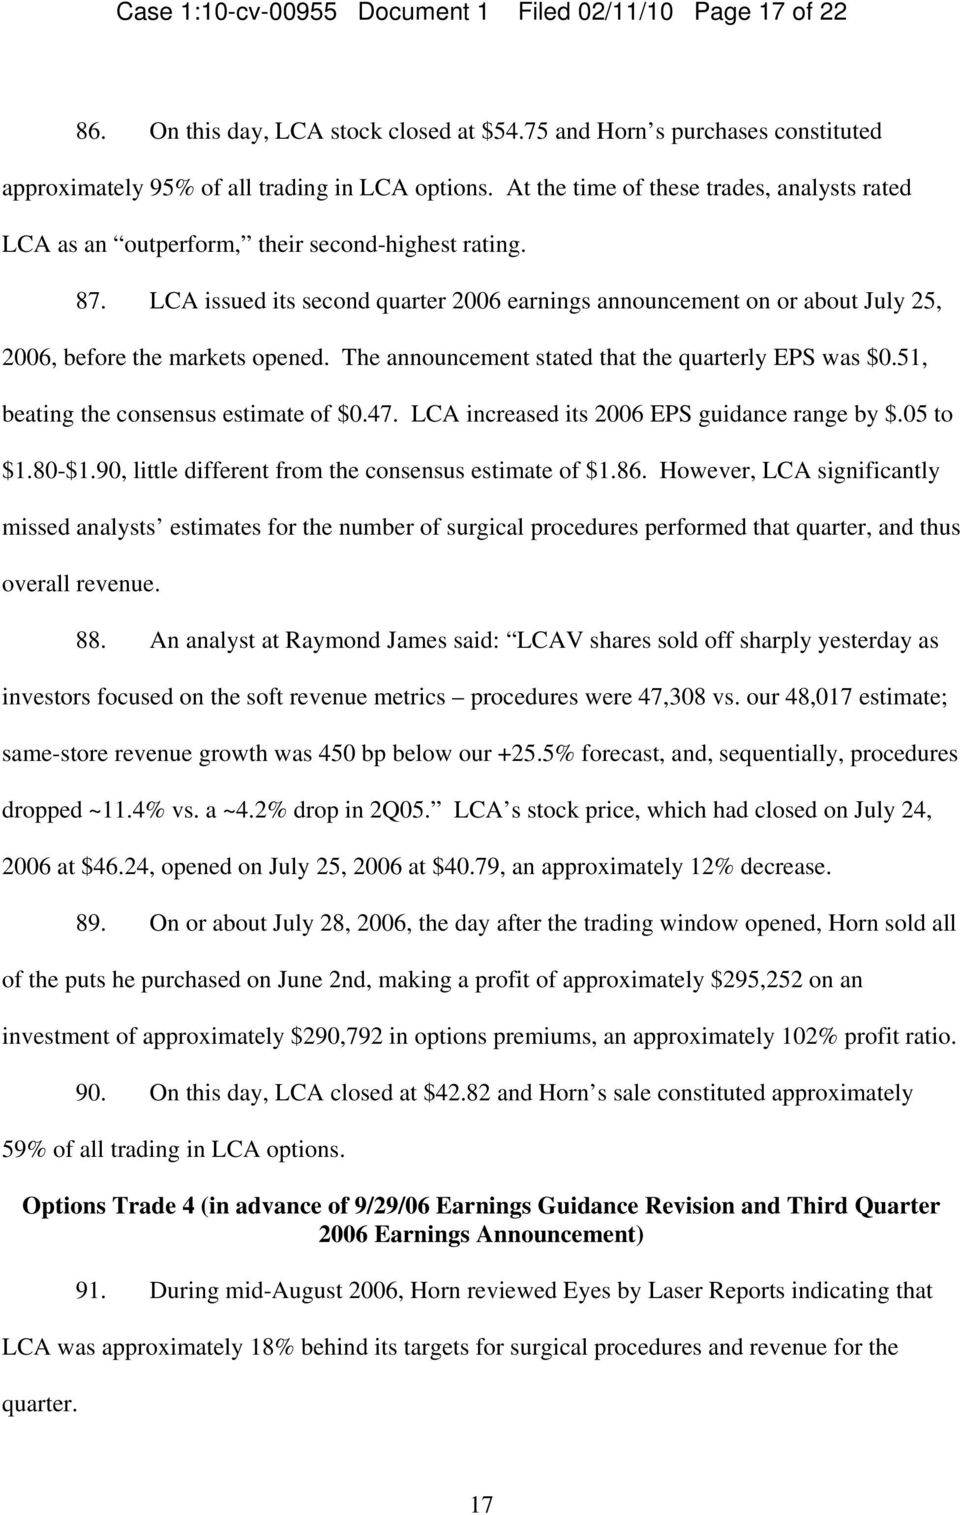 LCA issued its second quarter 2006 earnings announcement on or about July 25, 2006, before the markets opened. The announcement stated that the quarterly EPS was $0.